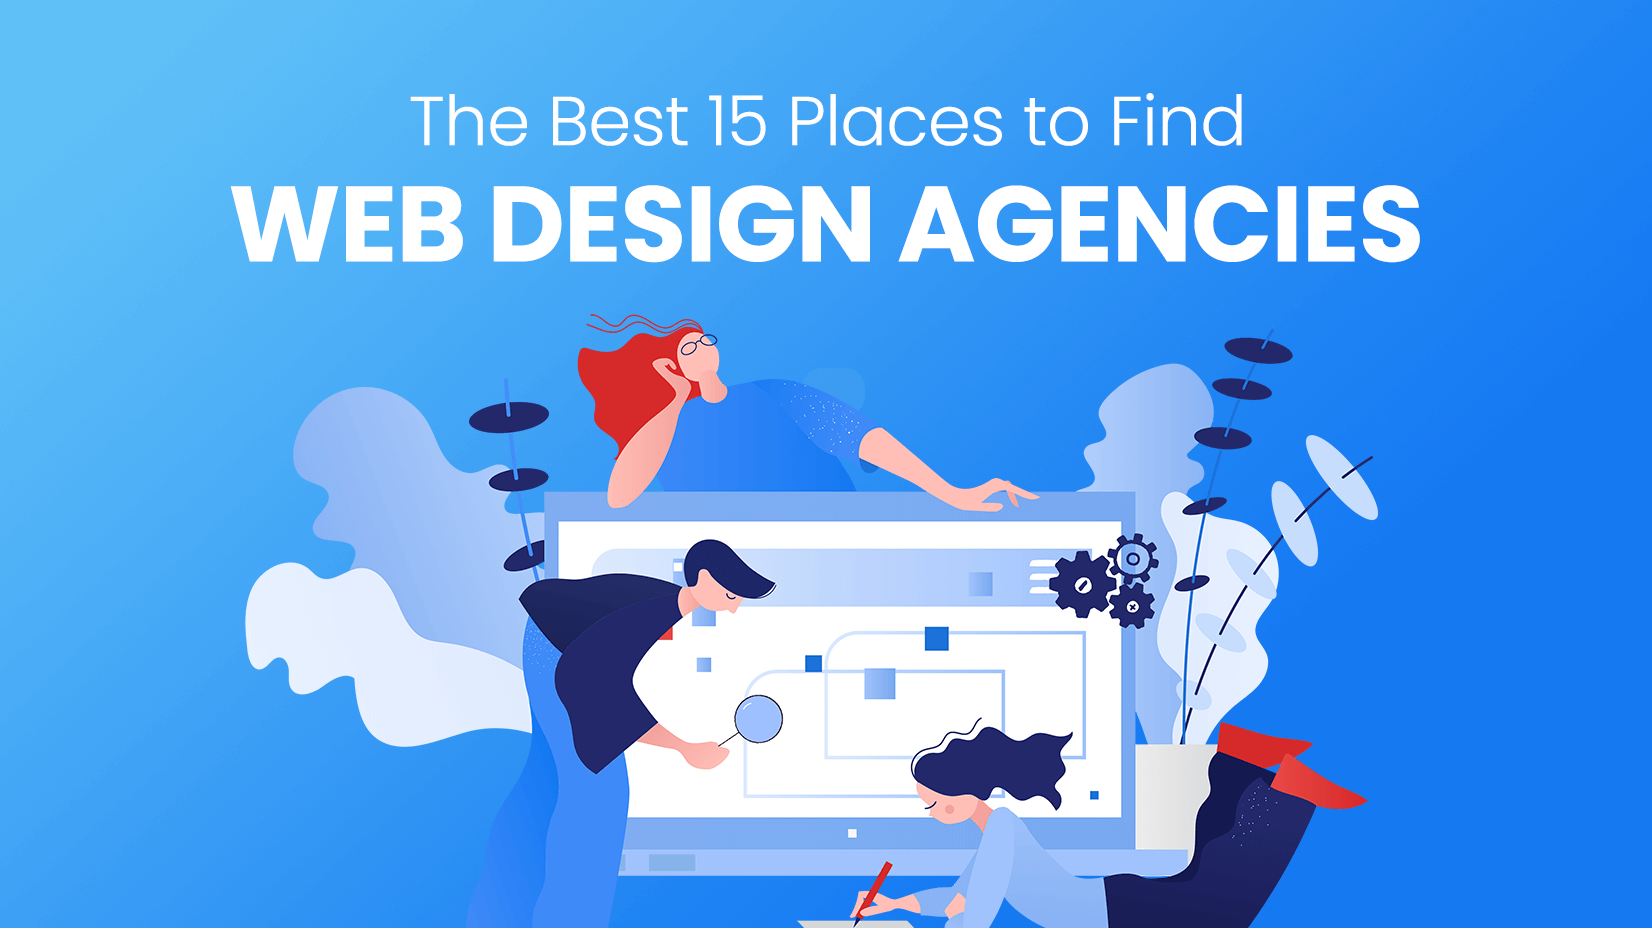 The Best 15 Places to Find Web Design Agencies